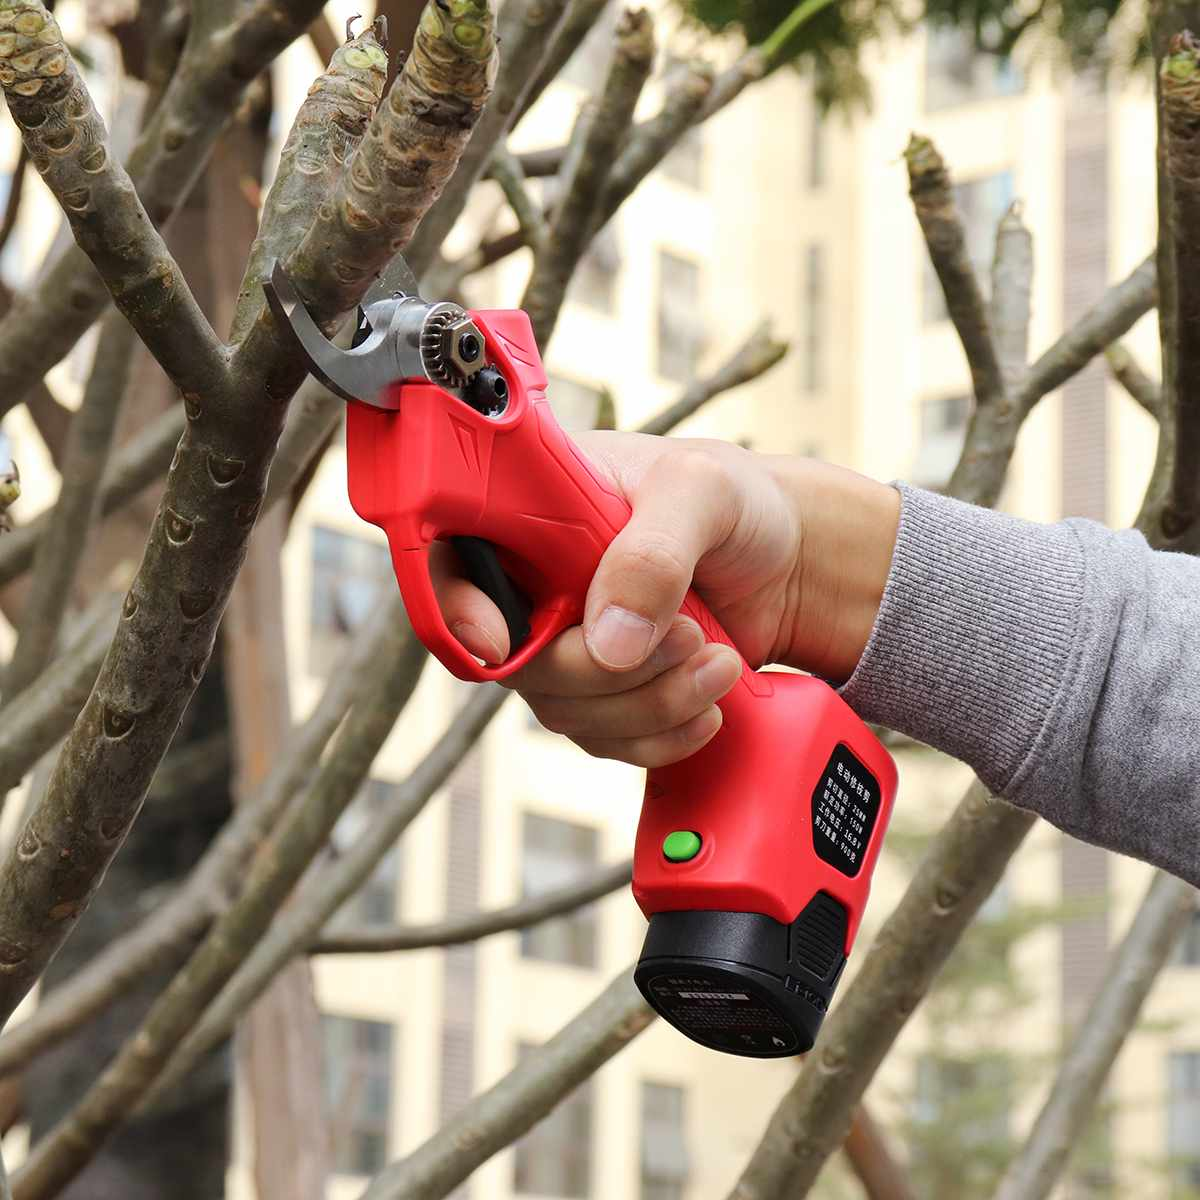 Wireless 16.8V 25mm Electric Garden Scissor for Brach Pruning with Li-ion Battery and USB Charger 15